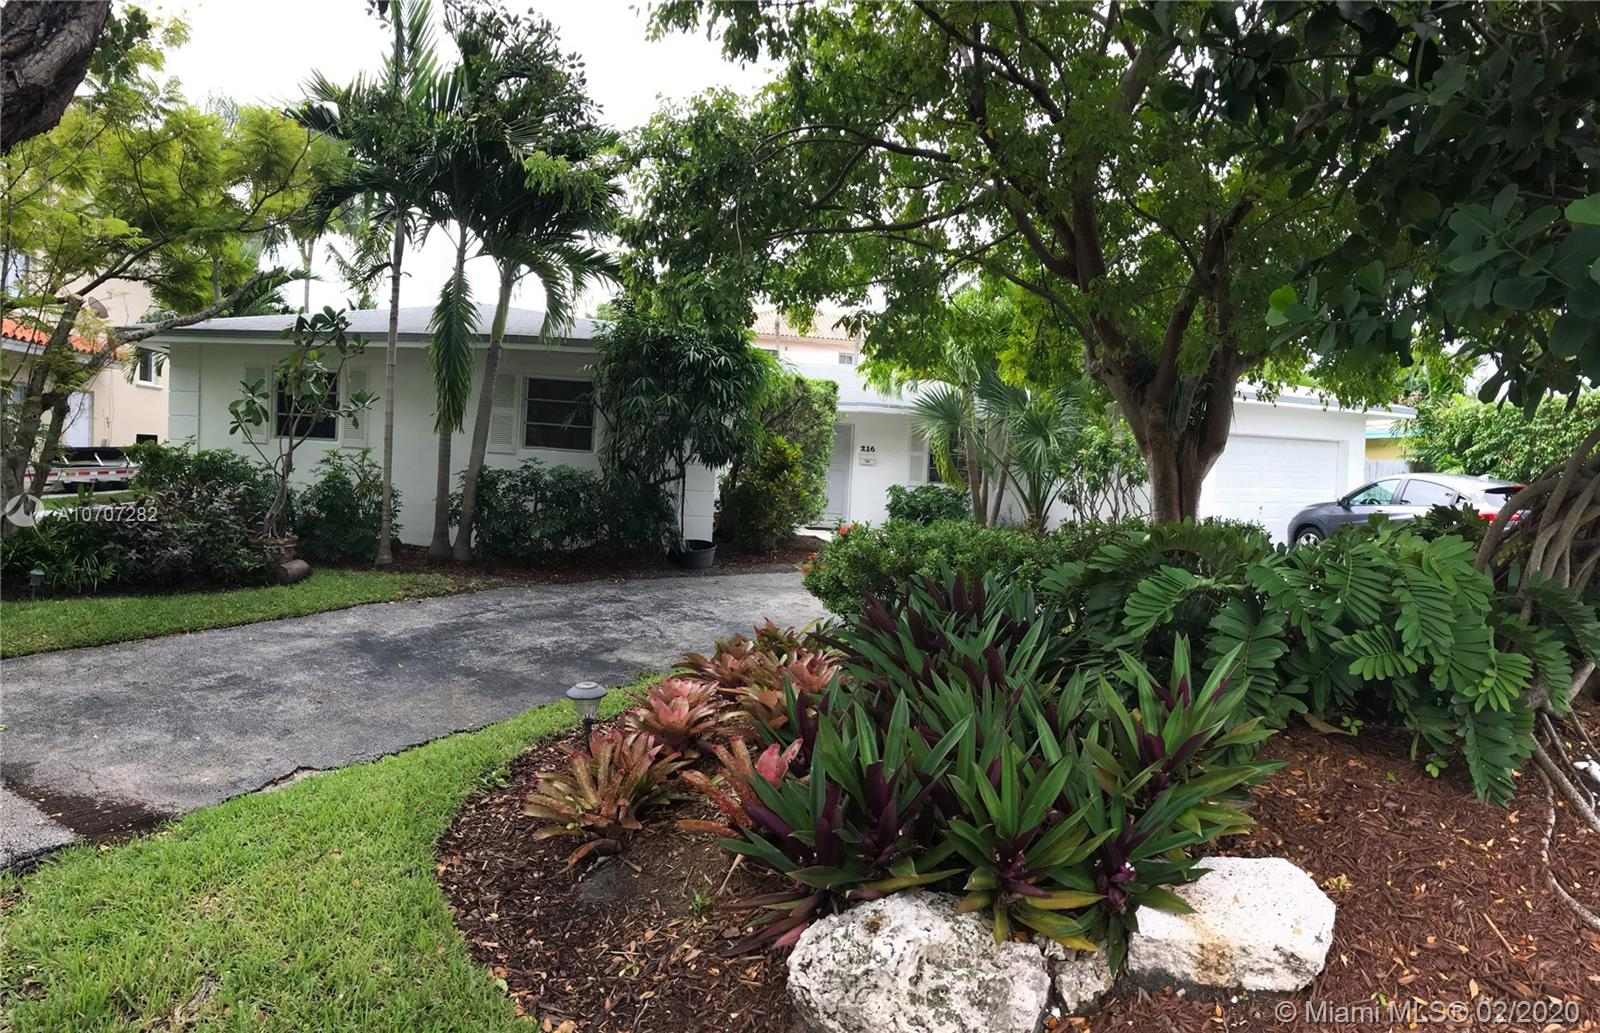 216  Buttonwood  For Sale A10707282, FL